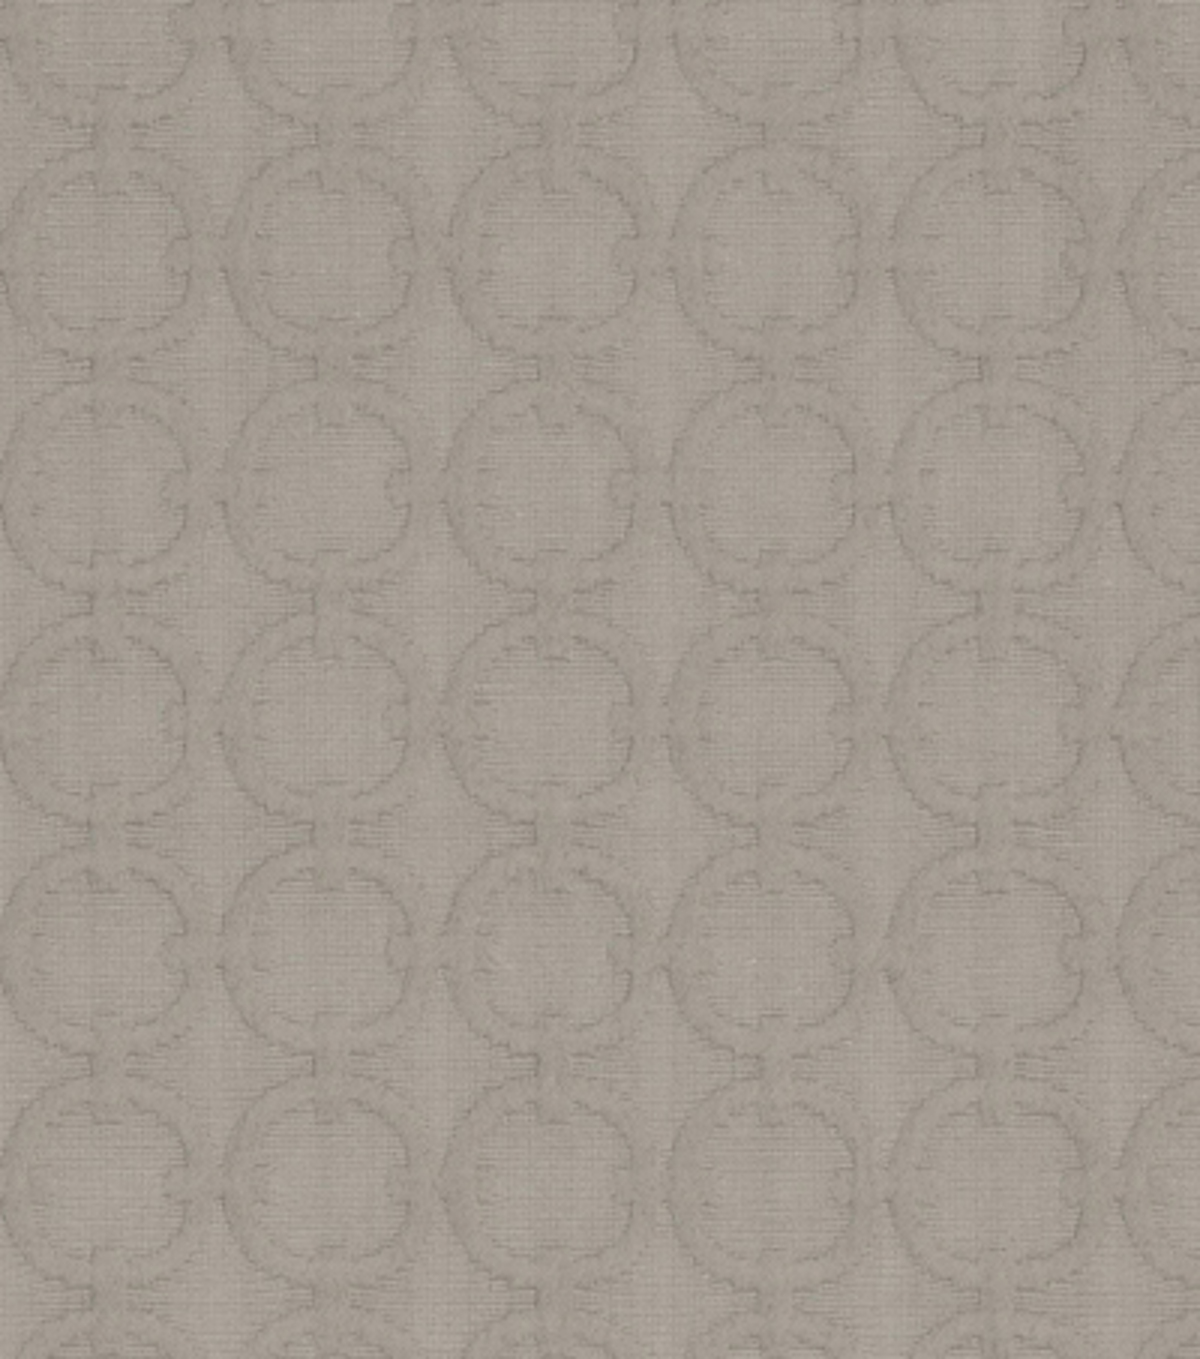 Home Decor 8\u0022x8\u0022 Fabric Swatch-Upholstery Fabric-Waverly Full Circle/Sterling